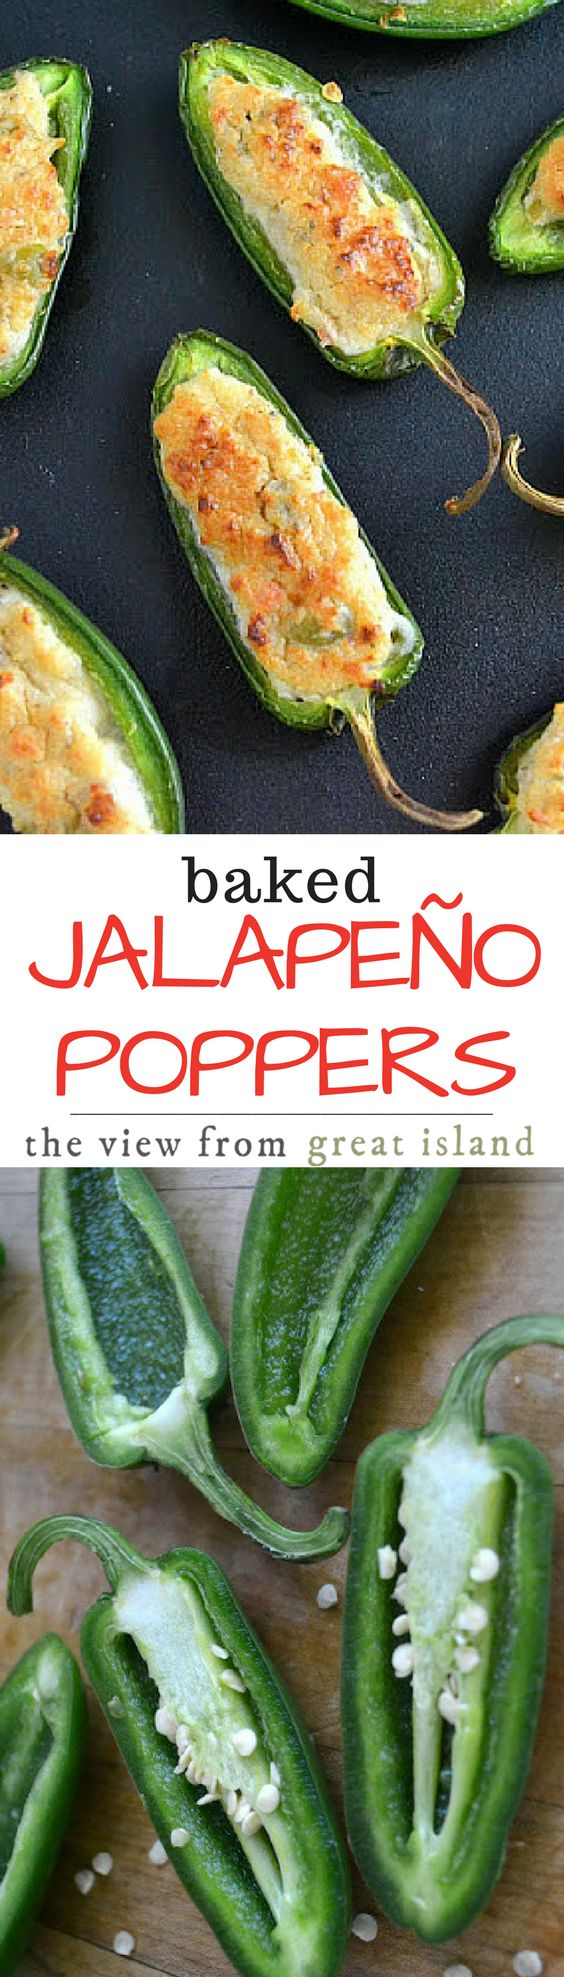 Baked Jalapeno Poppers are a healthier version of the decadent fried appetizer ~ these little guys are just as addictive as the originals, without all the guilt!